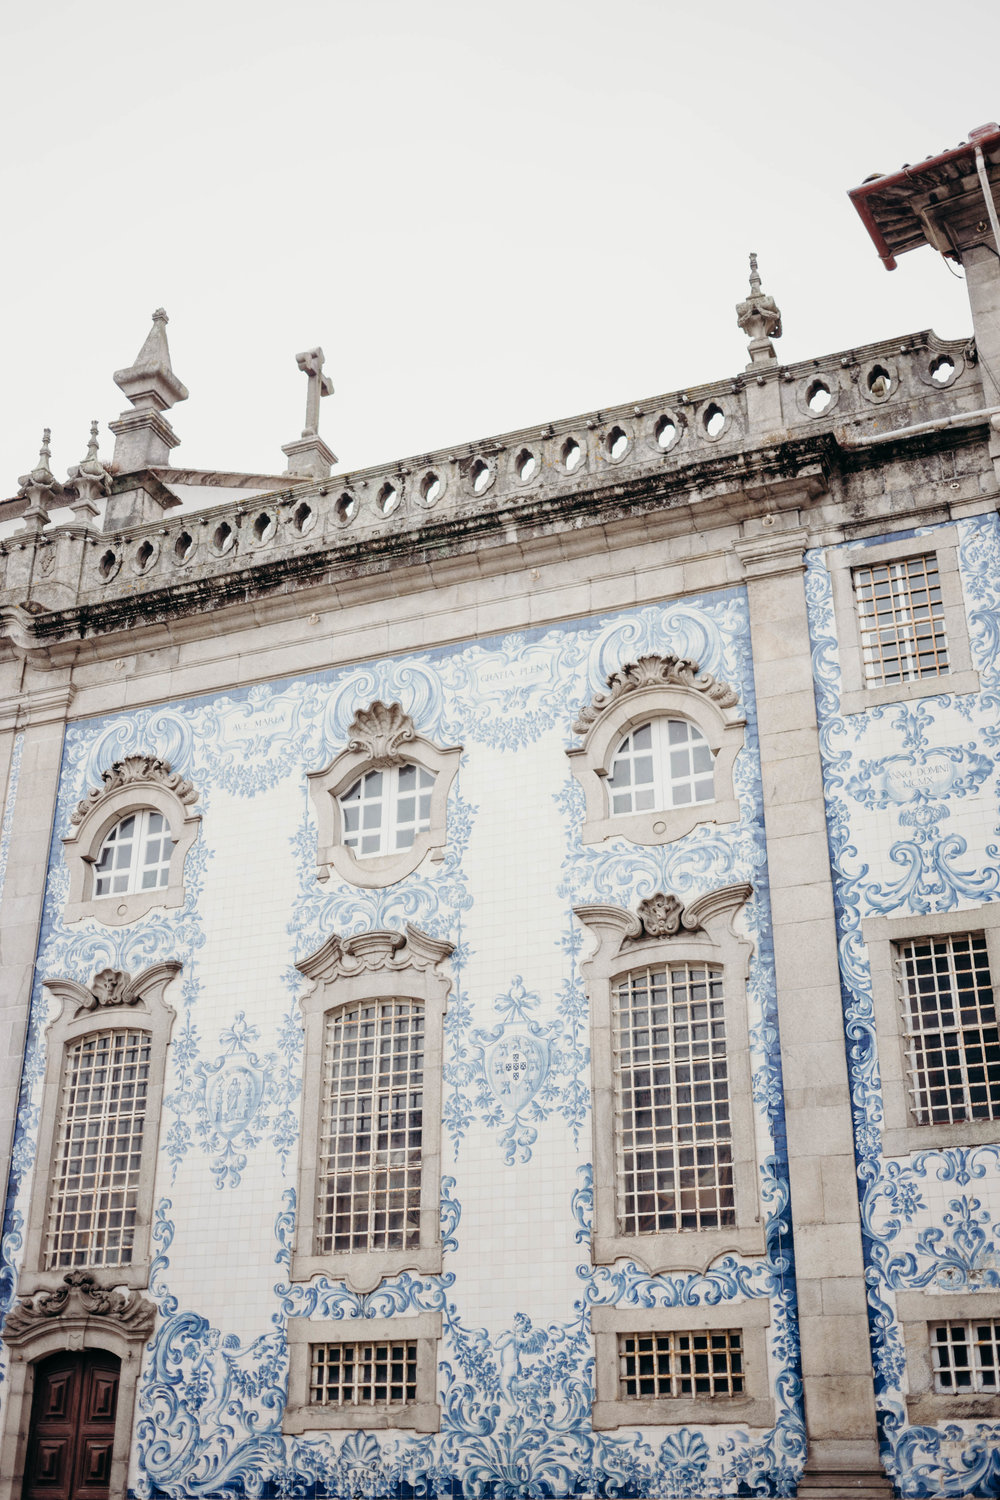 Our Portugal Travel Diary: Lisbon, Porto, and More | On the Street Where We Live (aretherelilactrees.com)  Igreja do Carmo, blue and white tiles, church